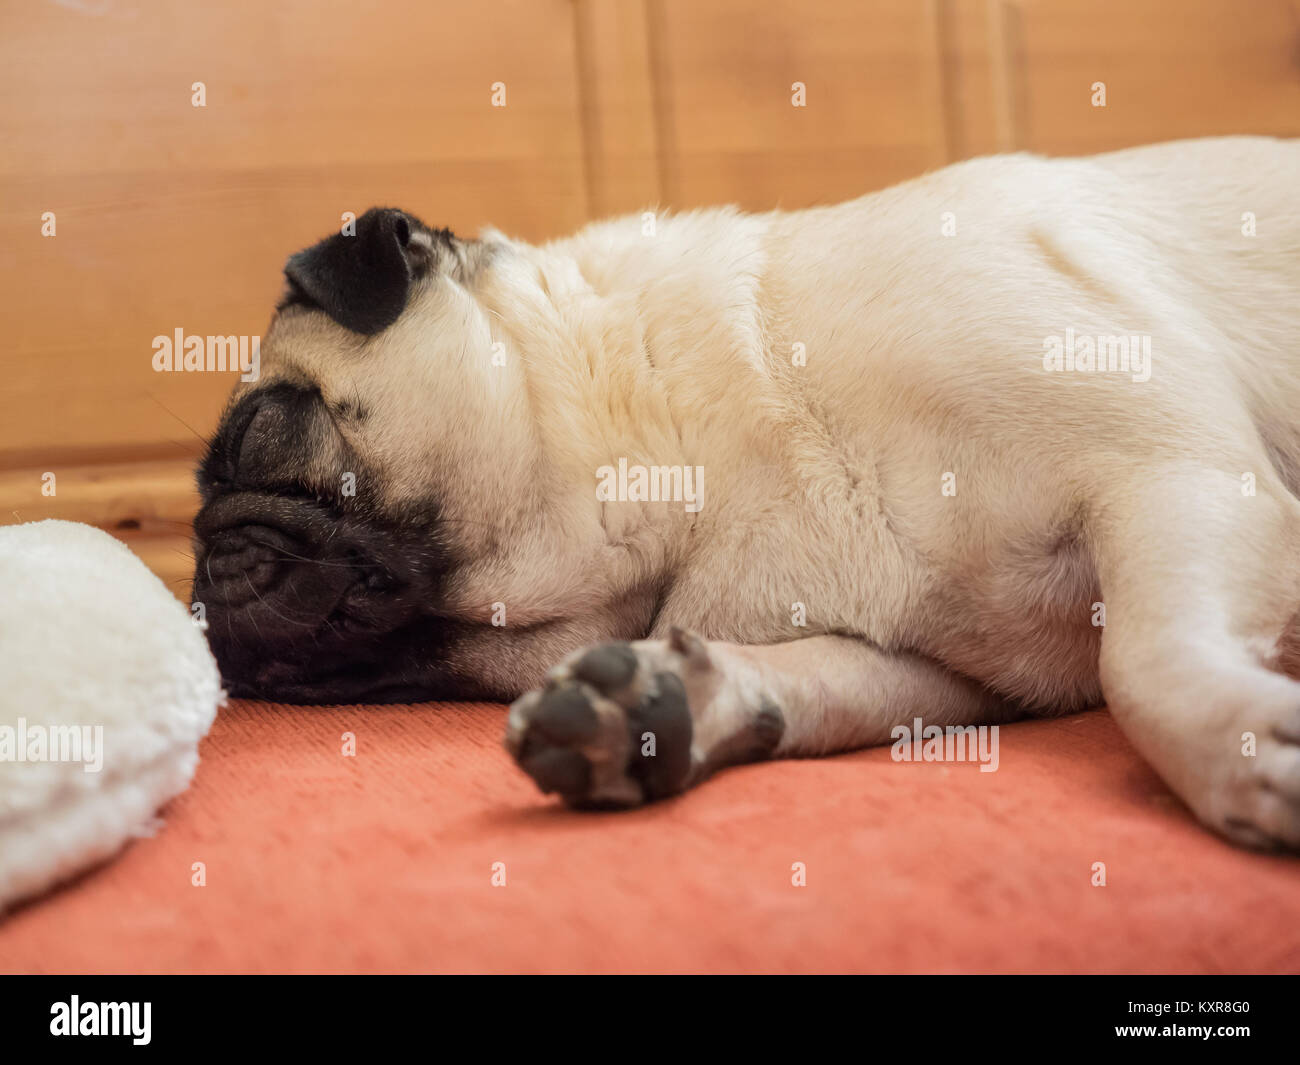 A pug is lying on the corner bench and is sleeping - Stock Image